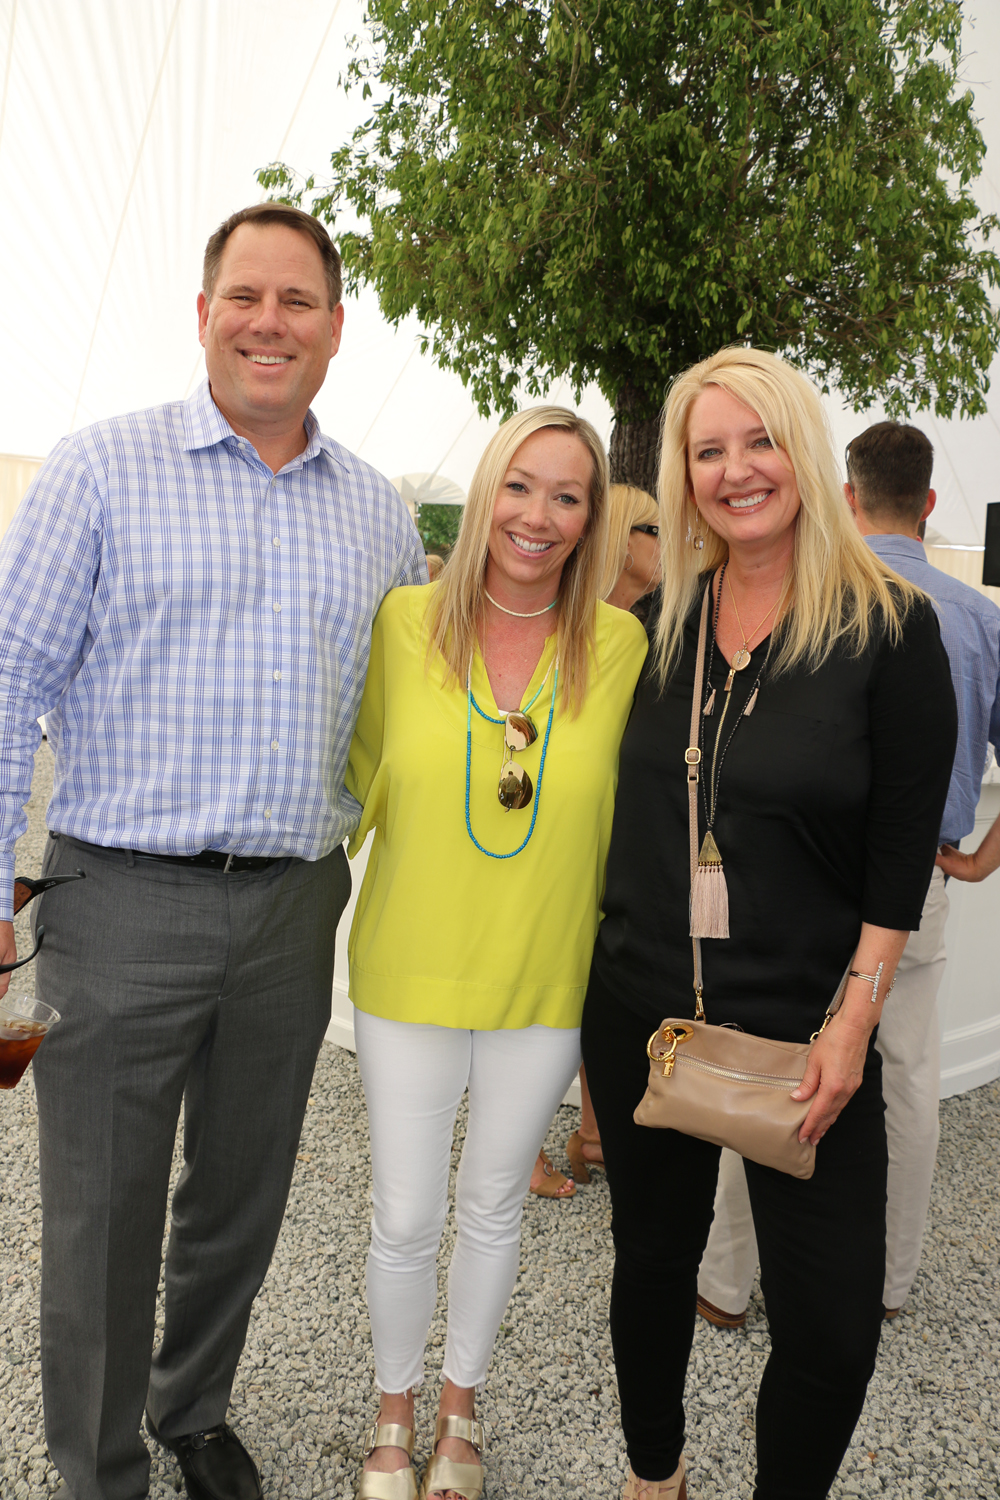 Commercial realtor Mark Erickson, interior decorator Hollis Erickson and Momentum Marketing principal Pam Hartley catch up at the party.